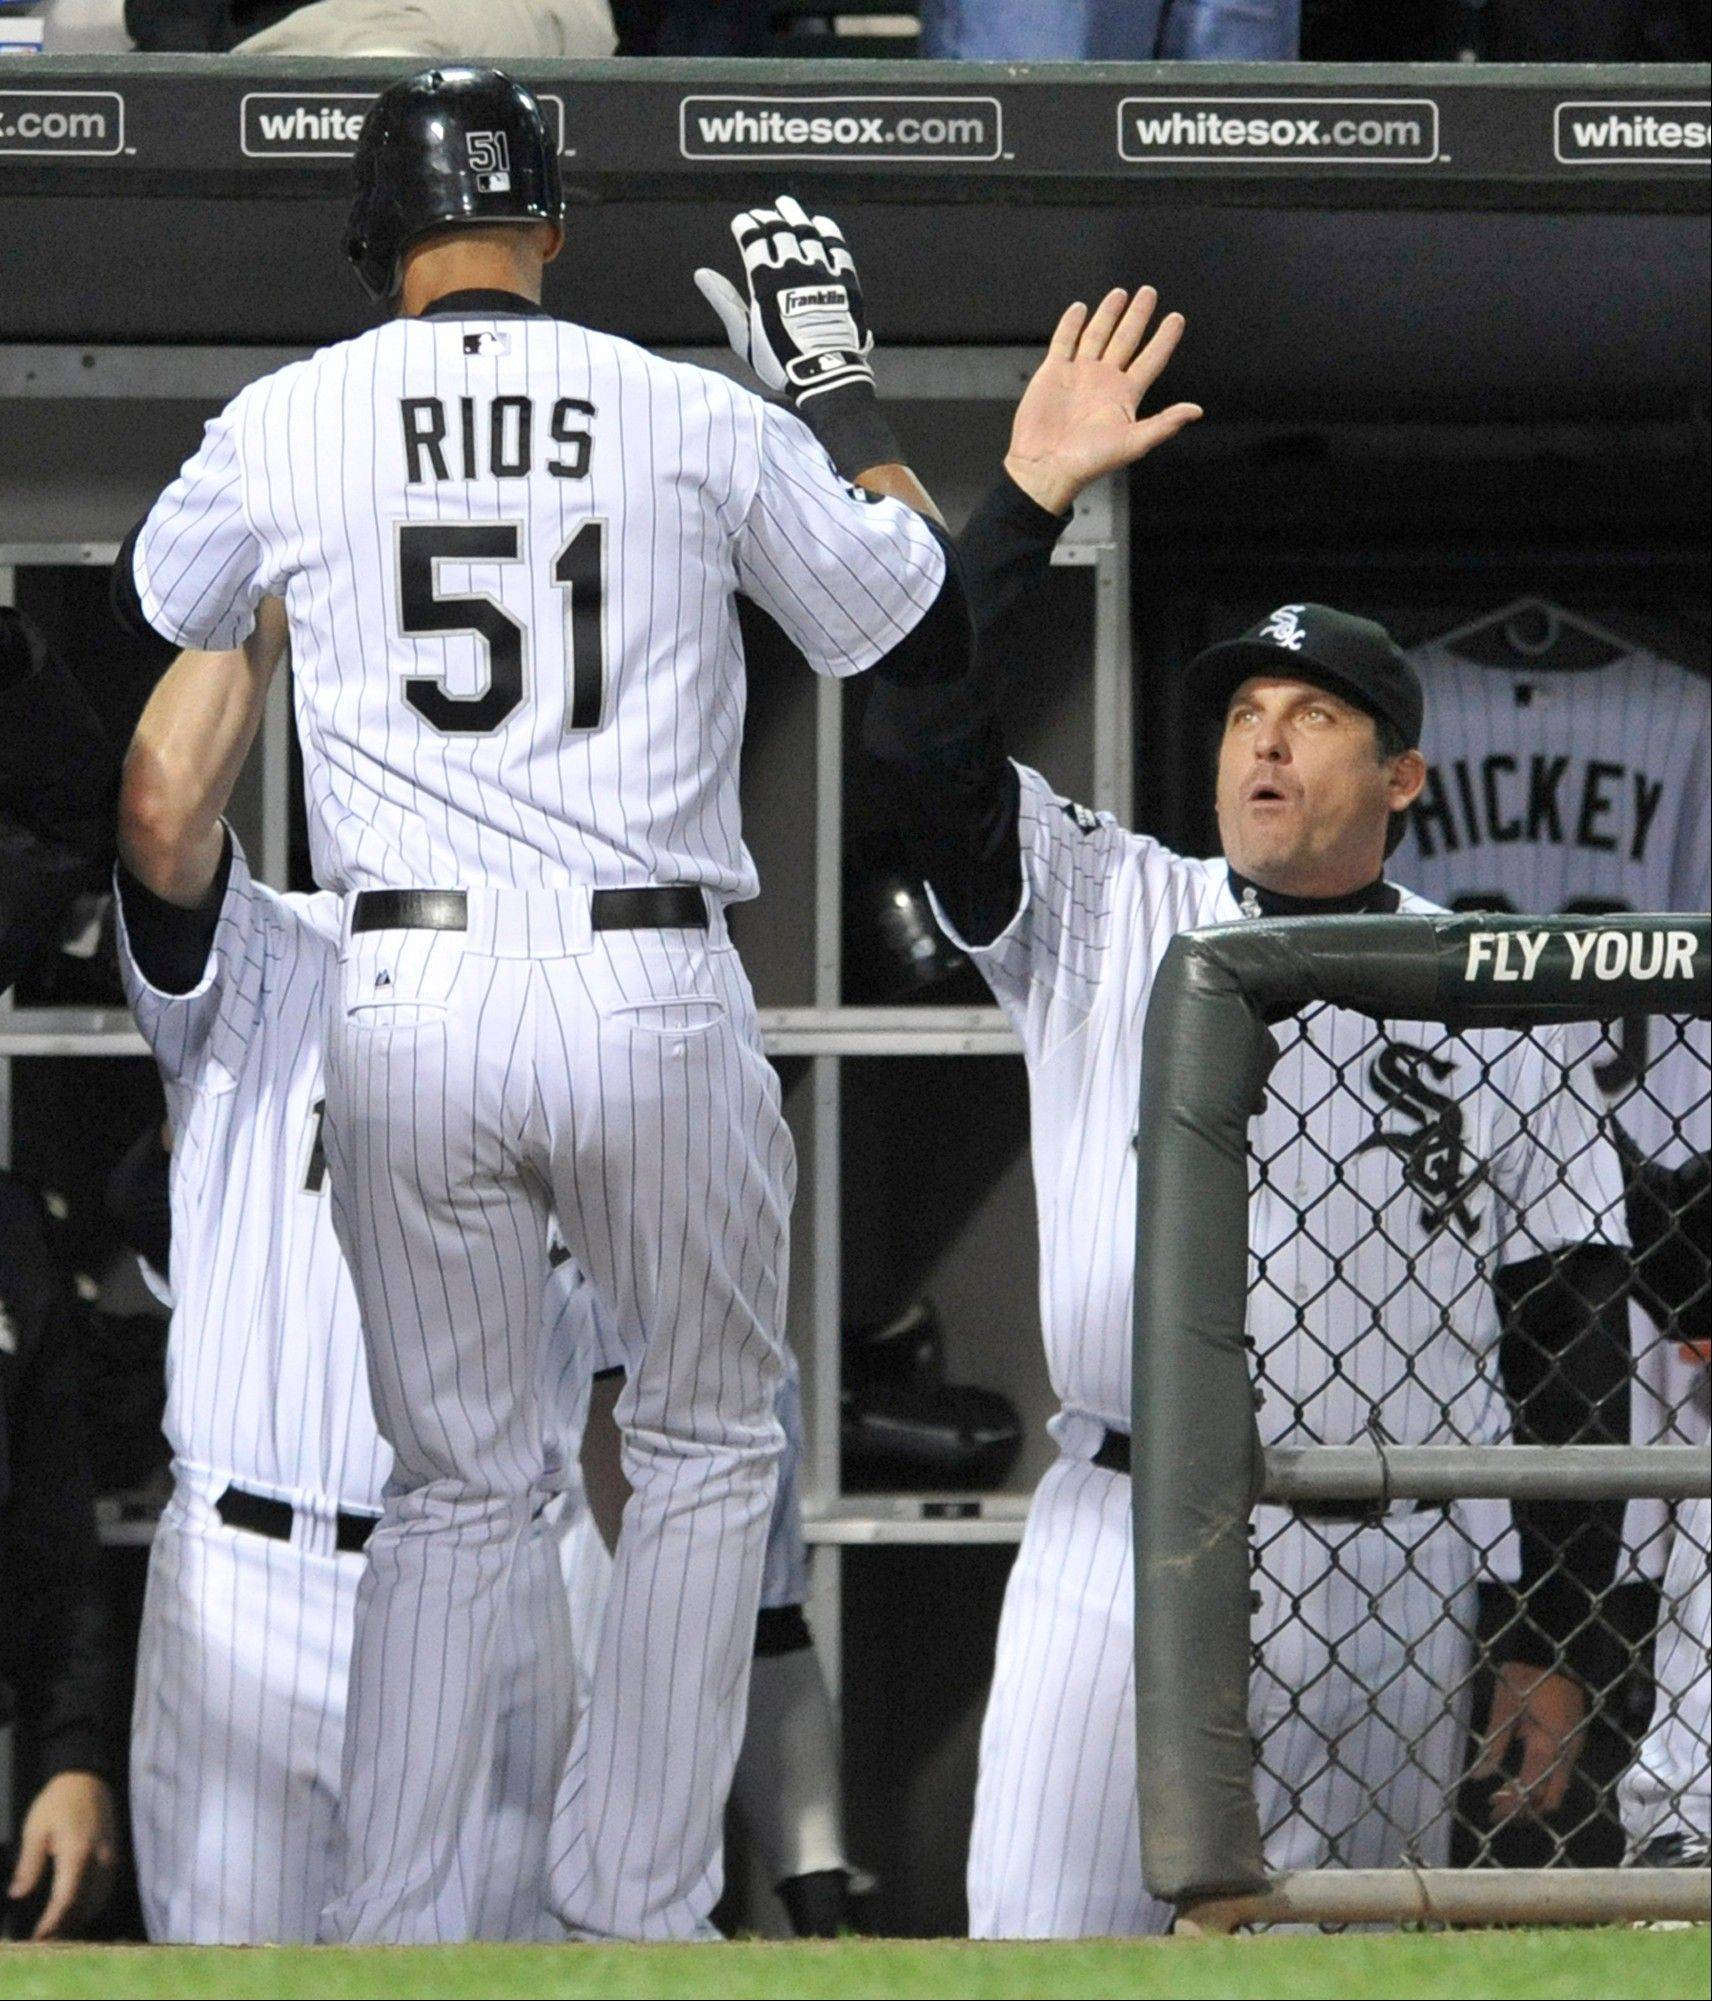 The White Sox' Alex Rios is greeted in the dugout after hitting the go-ahead run in the fourth inning.